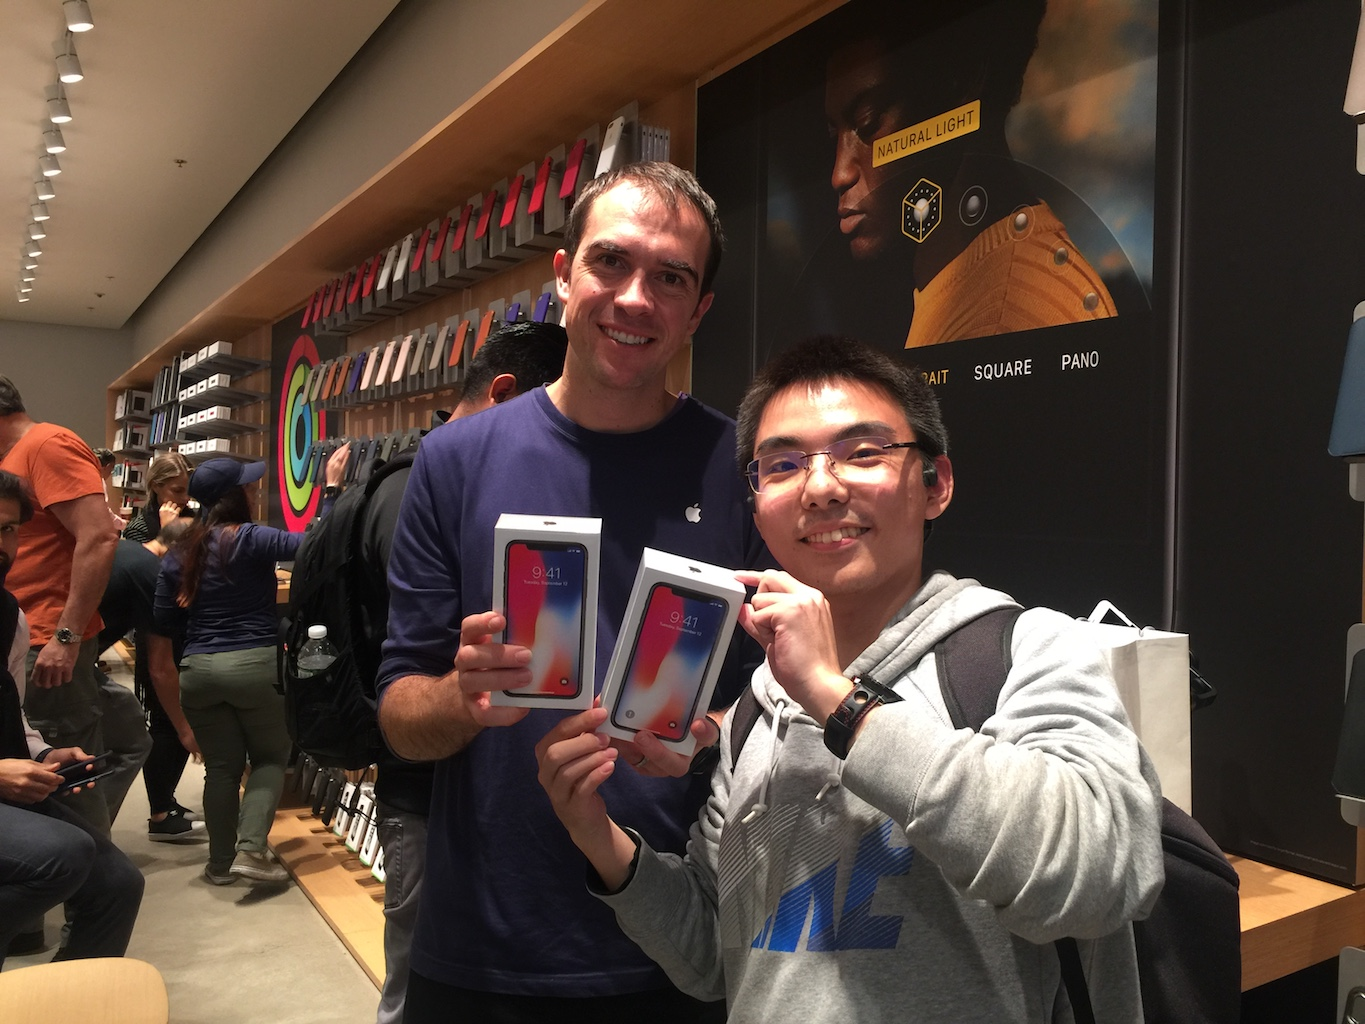 Satisfied customer popoway holding two iPhone X boxes with an Apple employee.